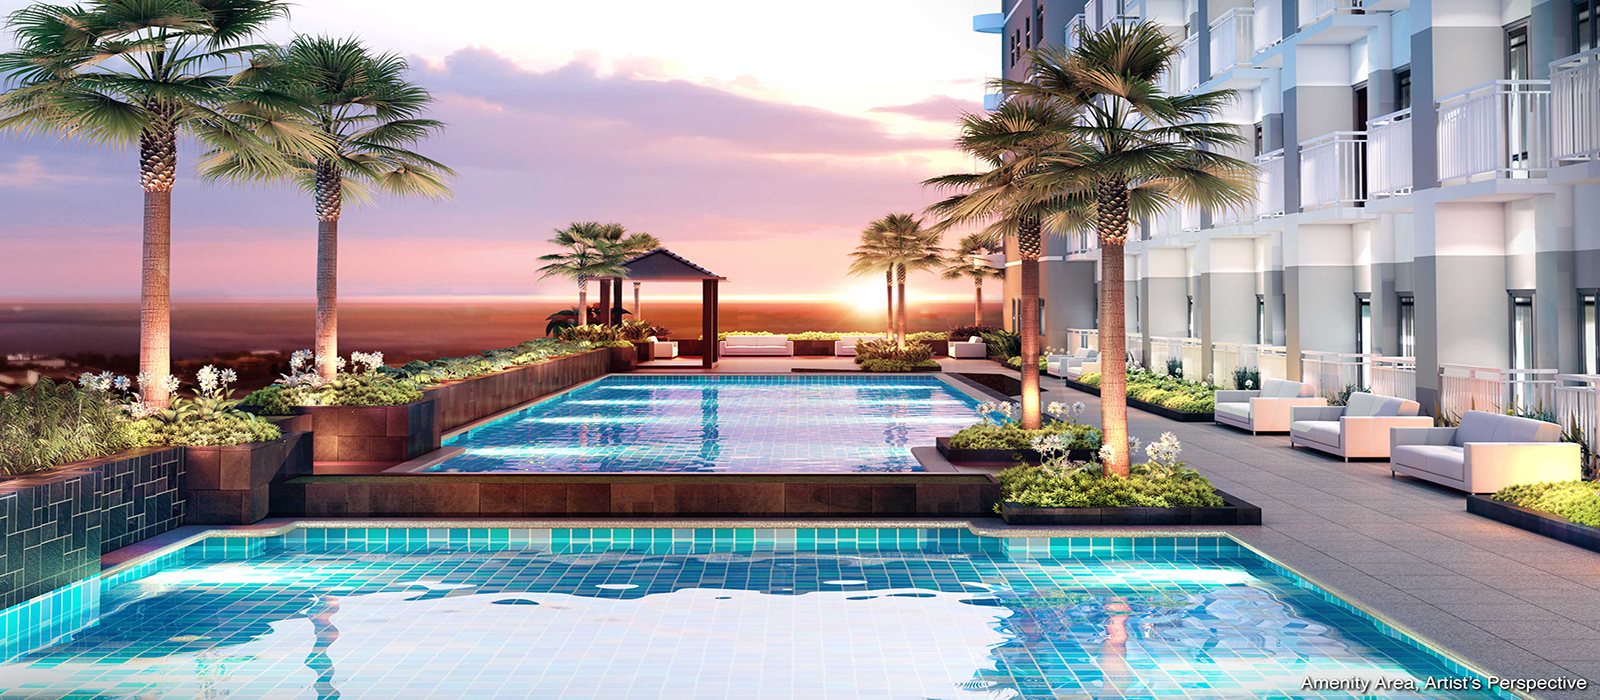 COAST RESIDENCES PROPERTIES IN THE PHILIPPINES